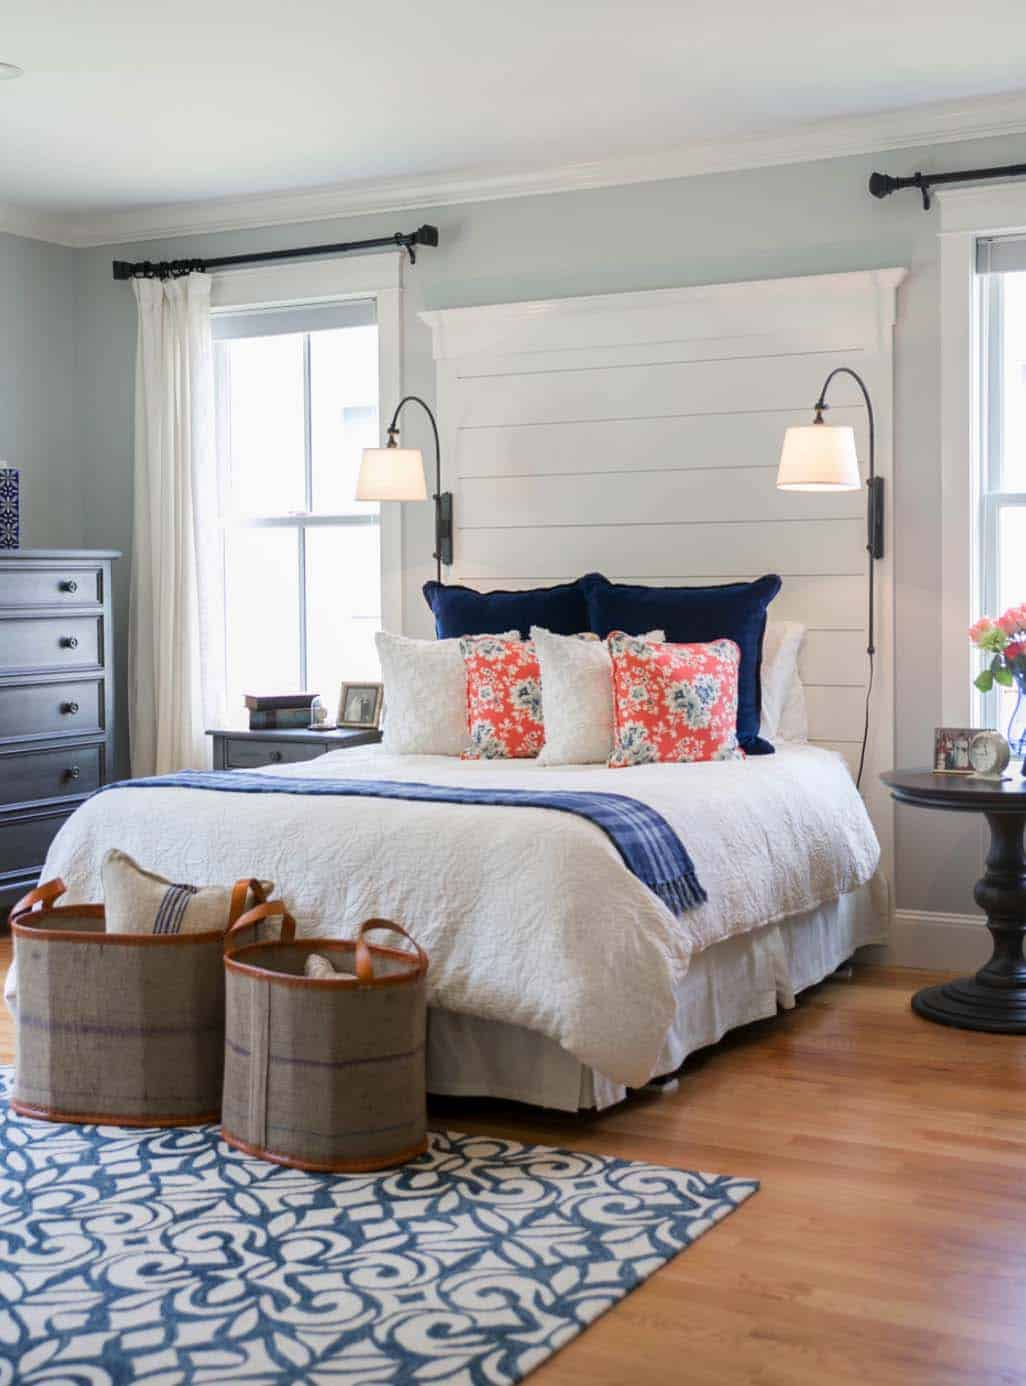 Beach Design Bedroom. Shiplap Wall Ideas Home 01 1 Kindesign Beach Design  Bedroom